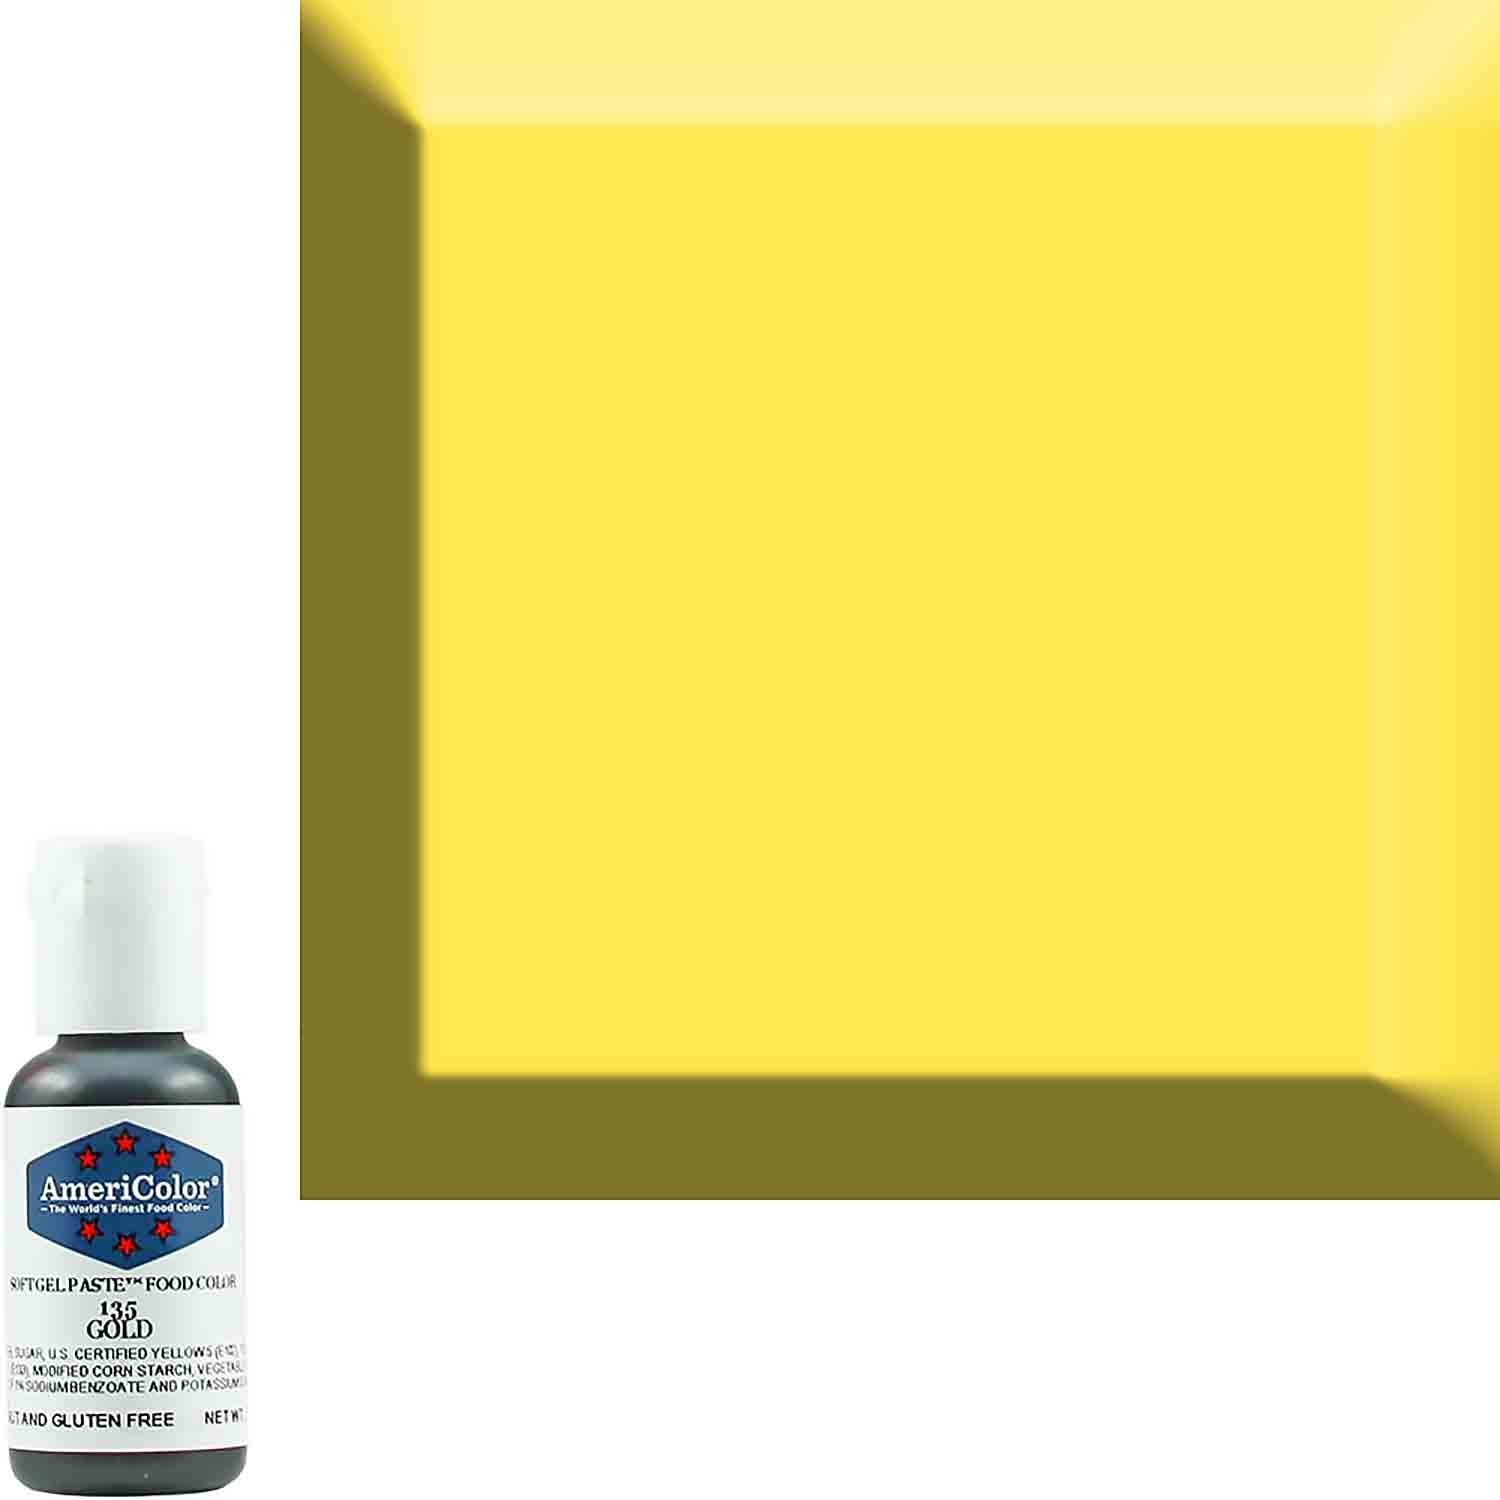 Gold AmeriColor® Soft Gel Paste™ Food Color